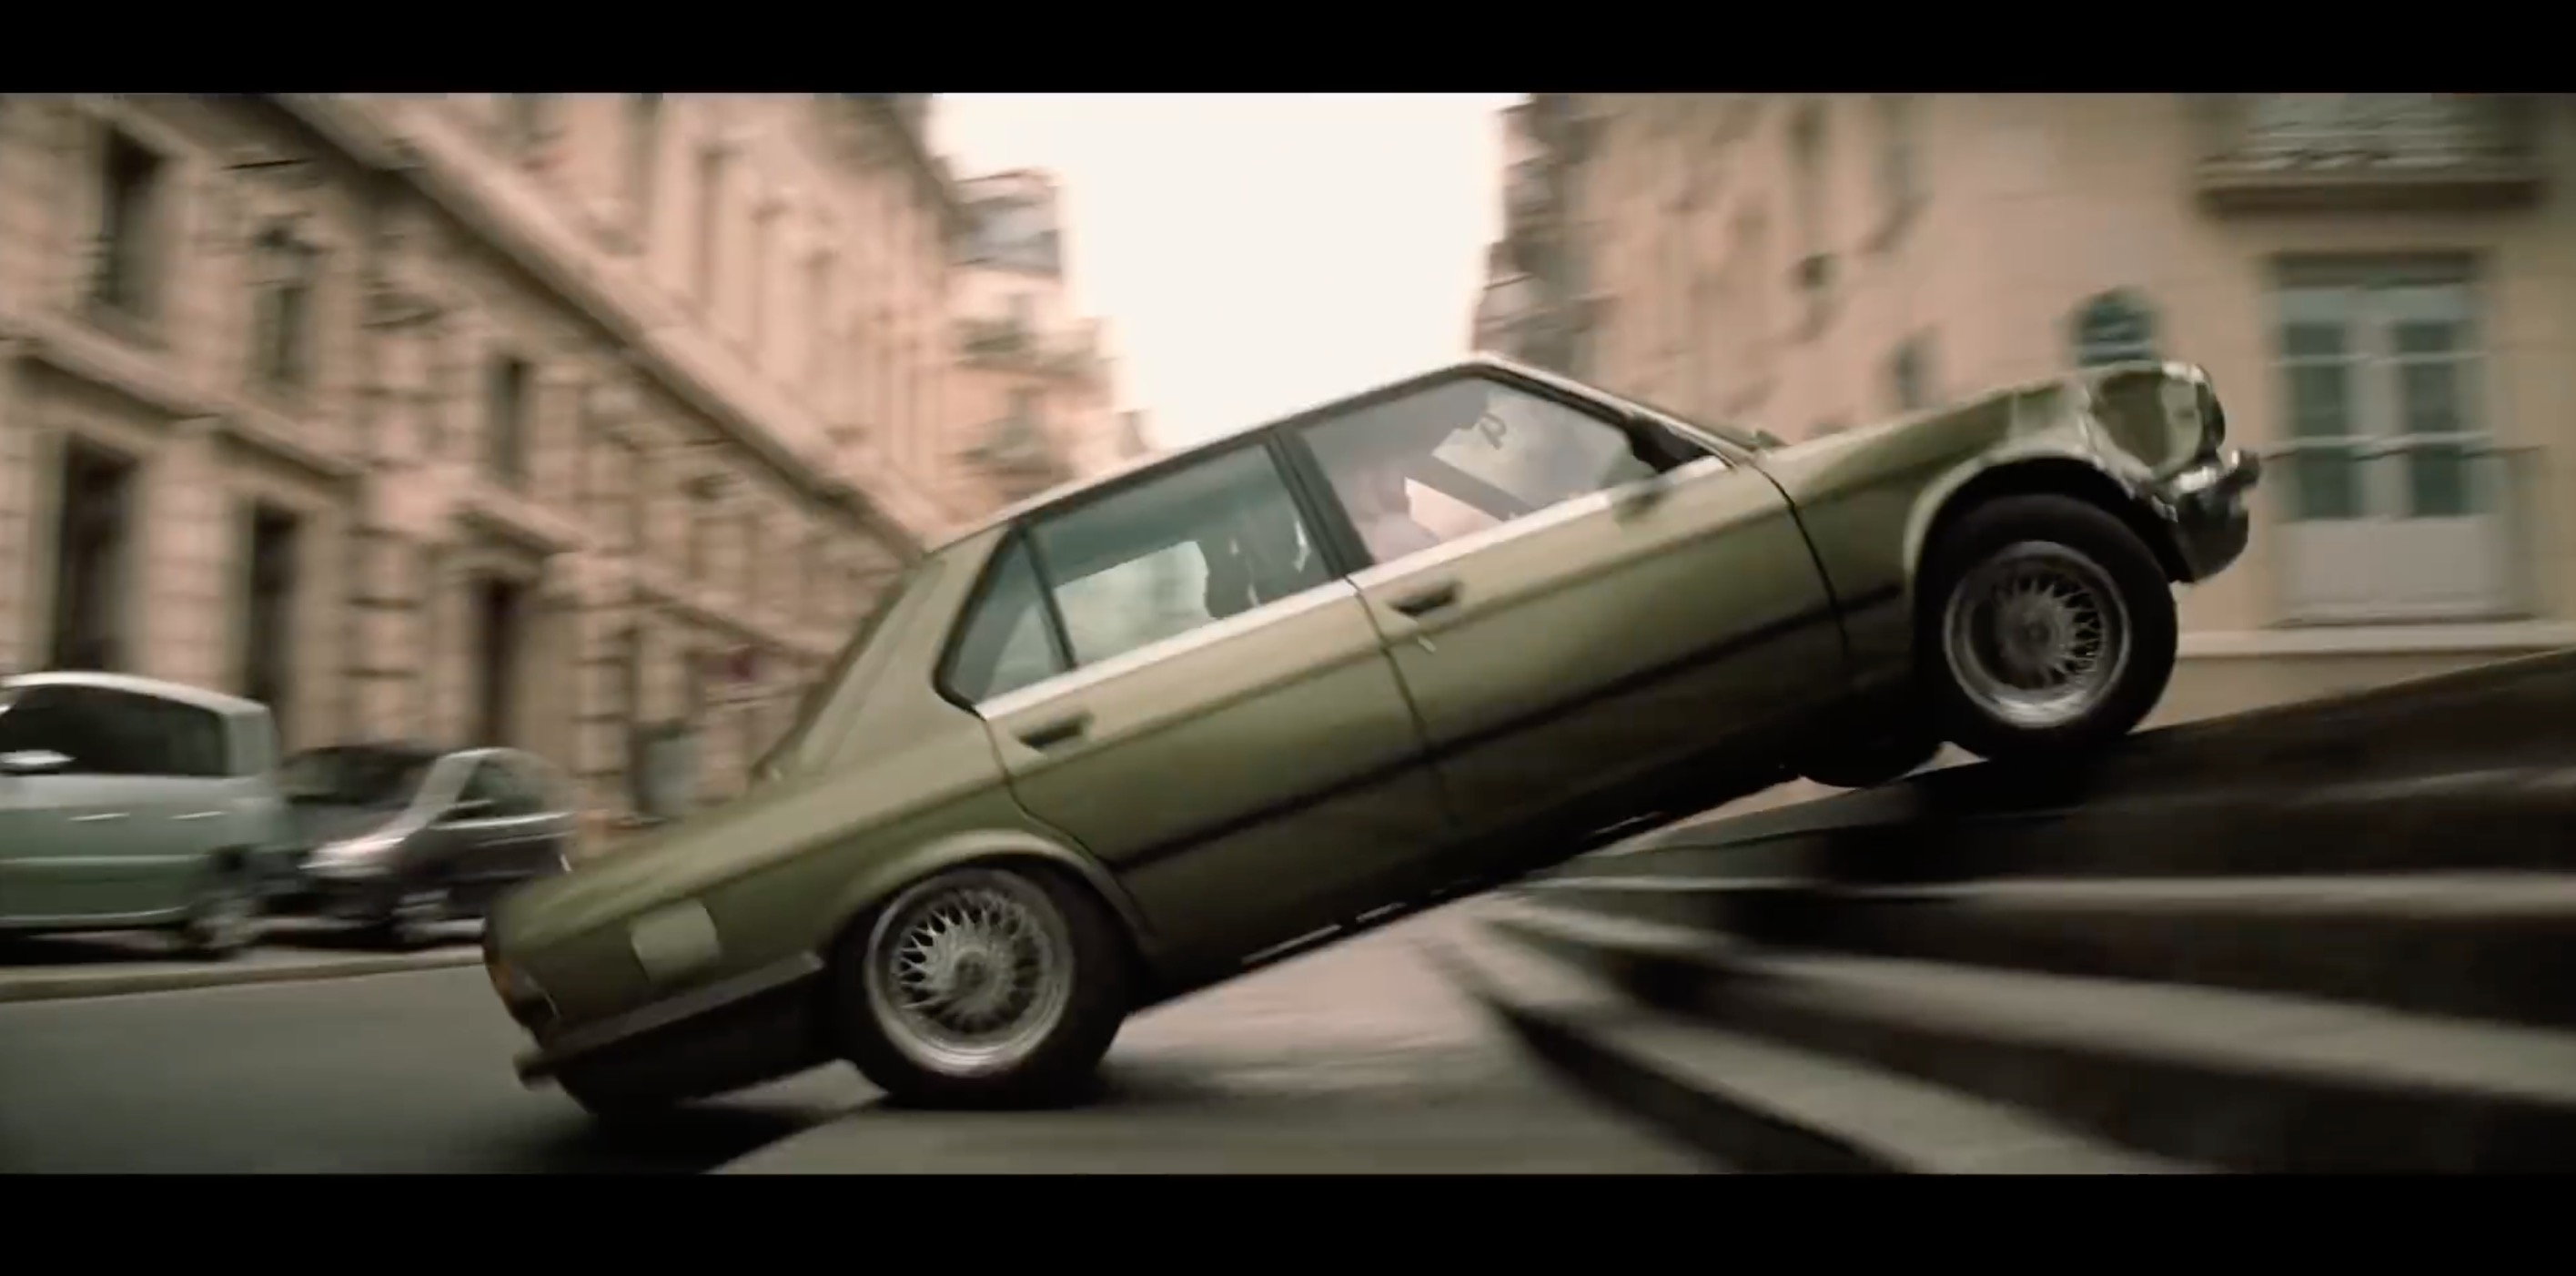 BMW Cars and Motorcycles to Power Next Mission Impossible Movie ...